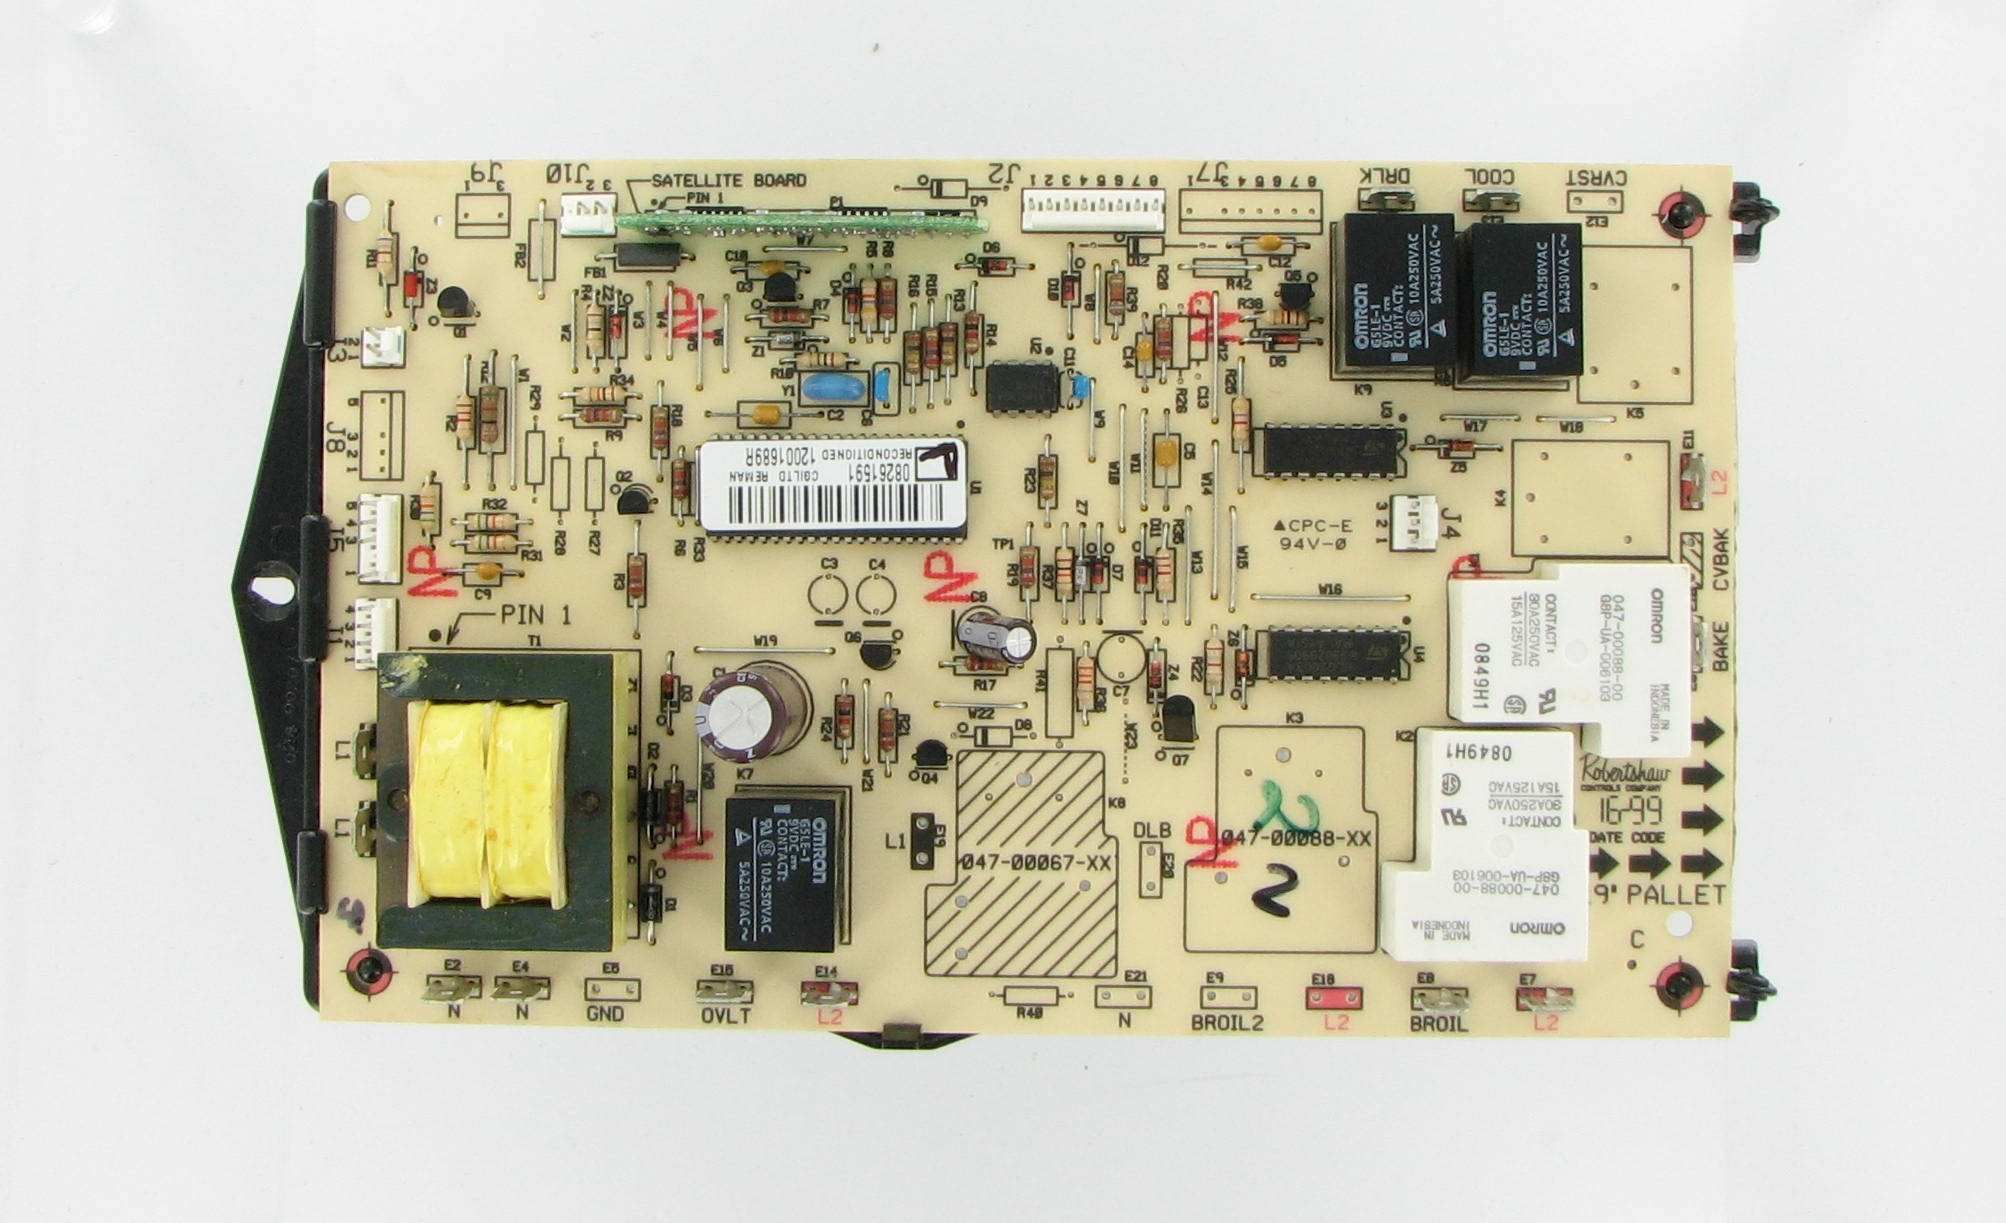 Maytag 12001689 Range Electronic Control Board. This